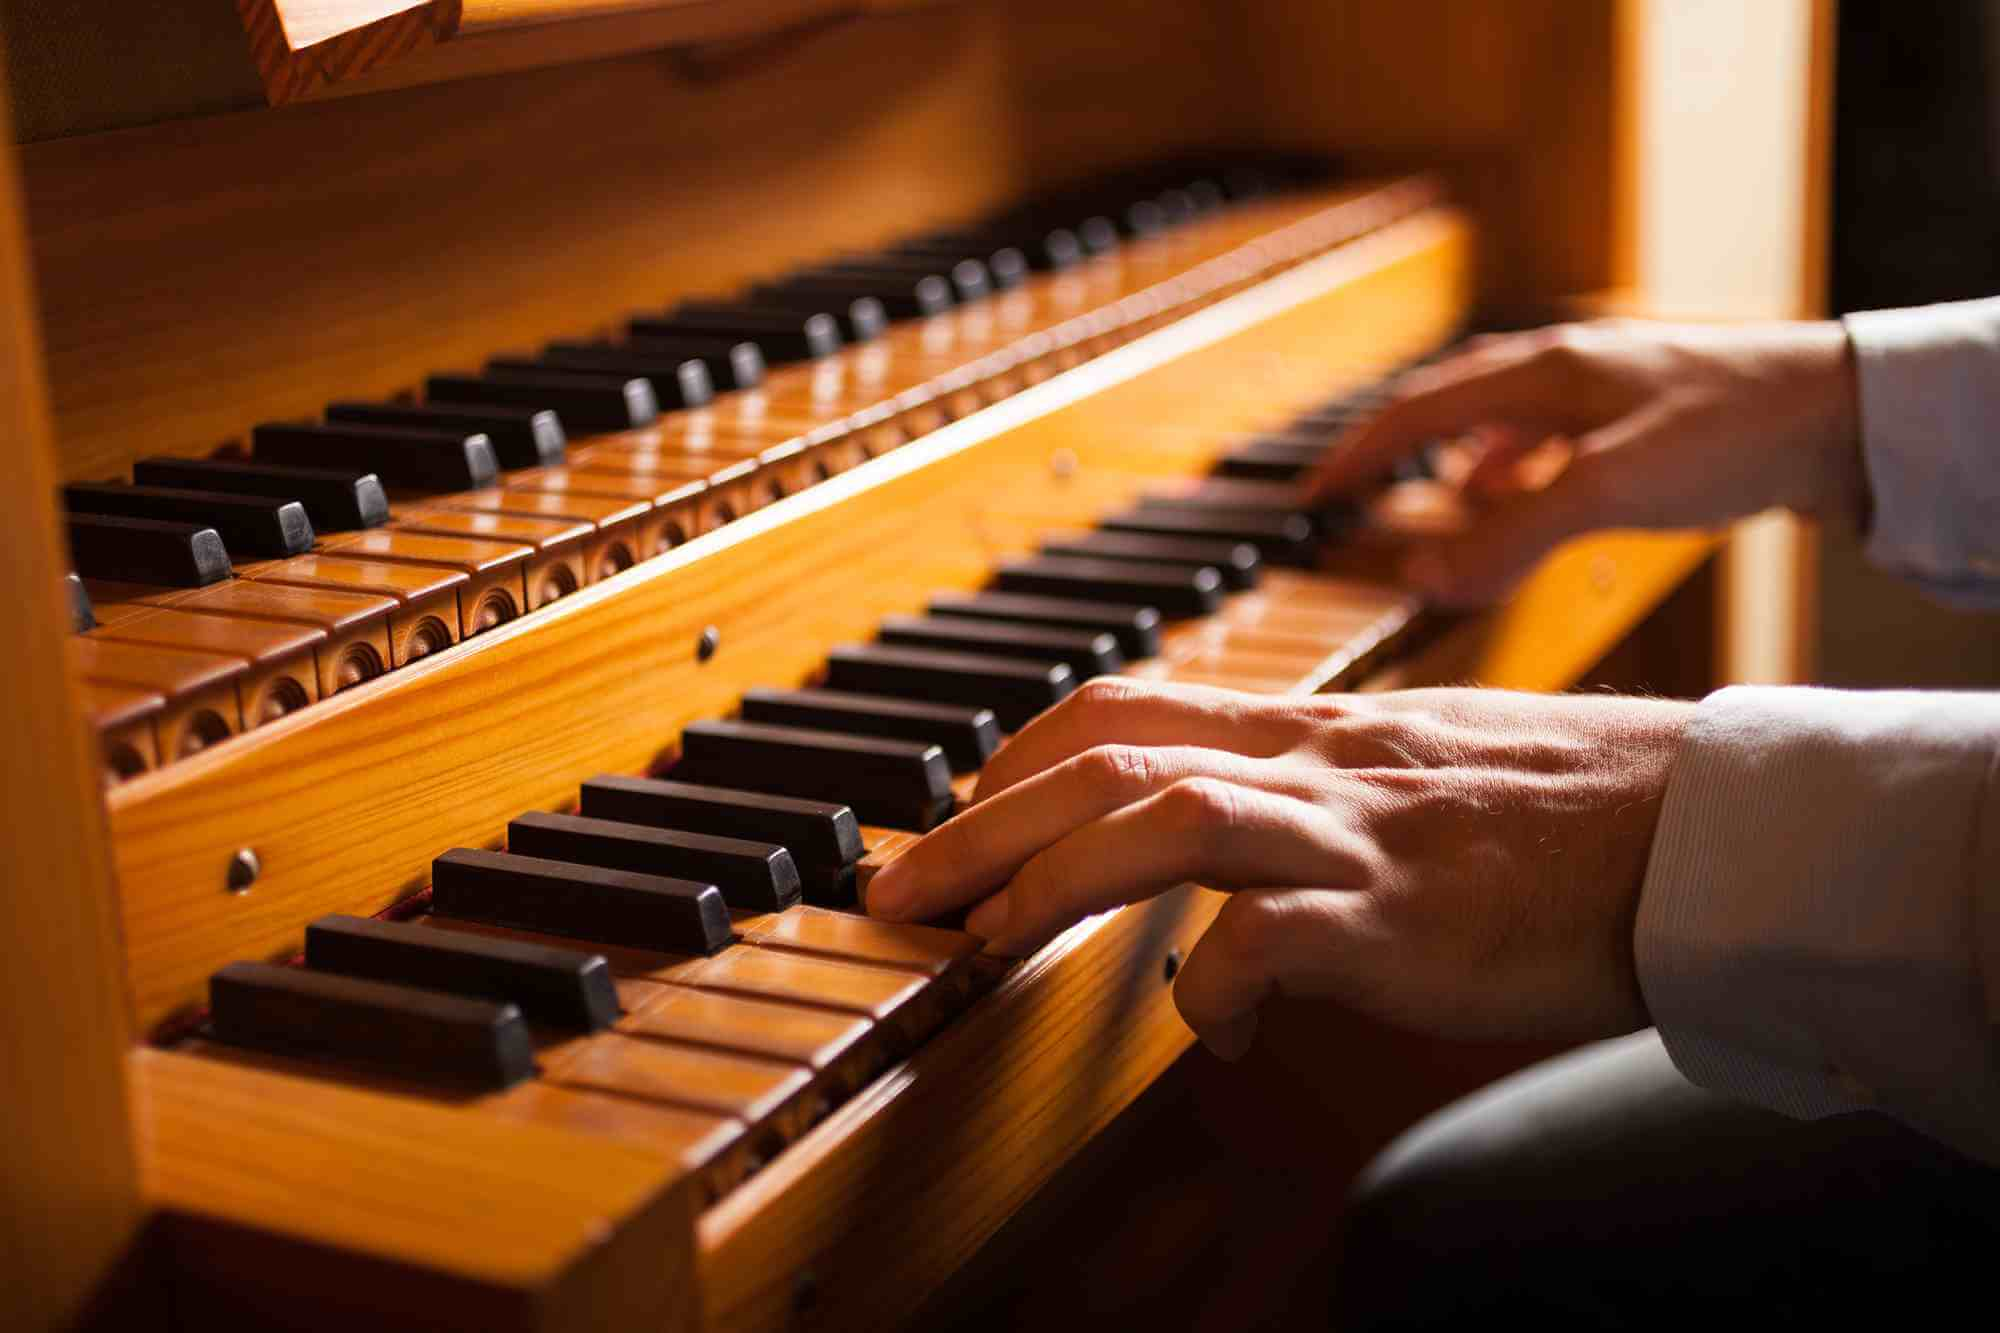 formally dressed man playing funeral music on a church organ